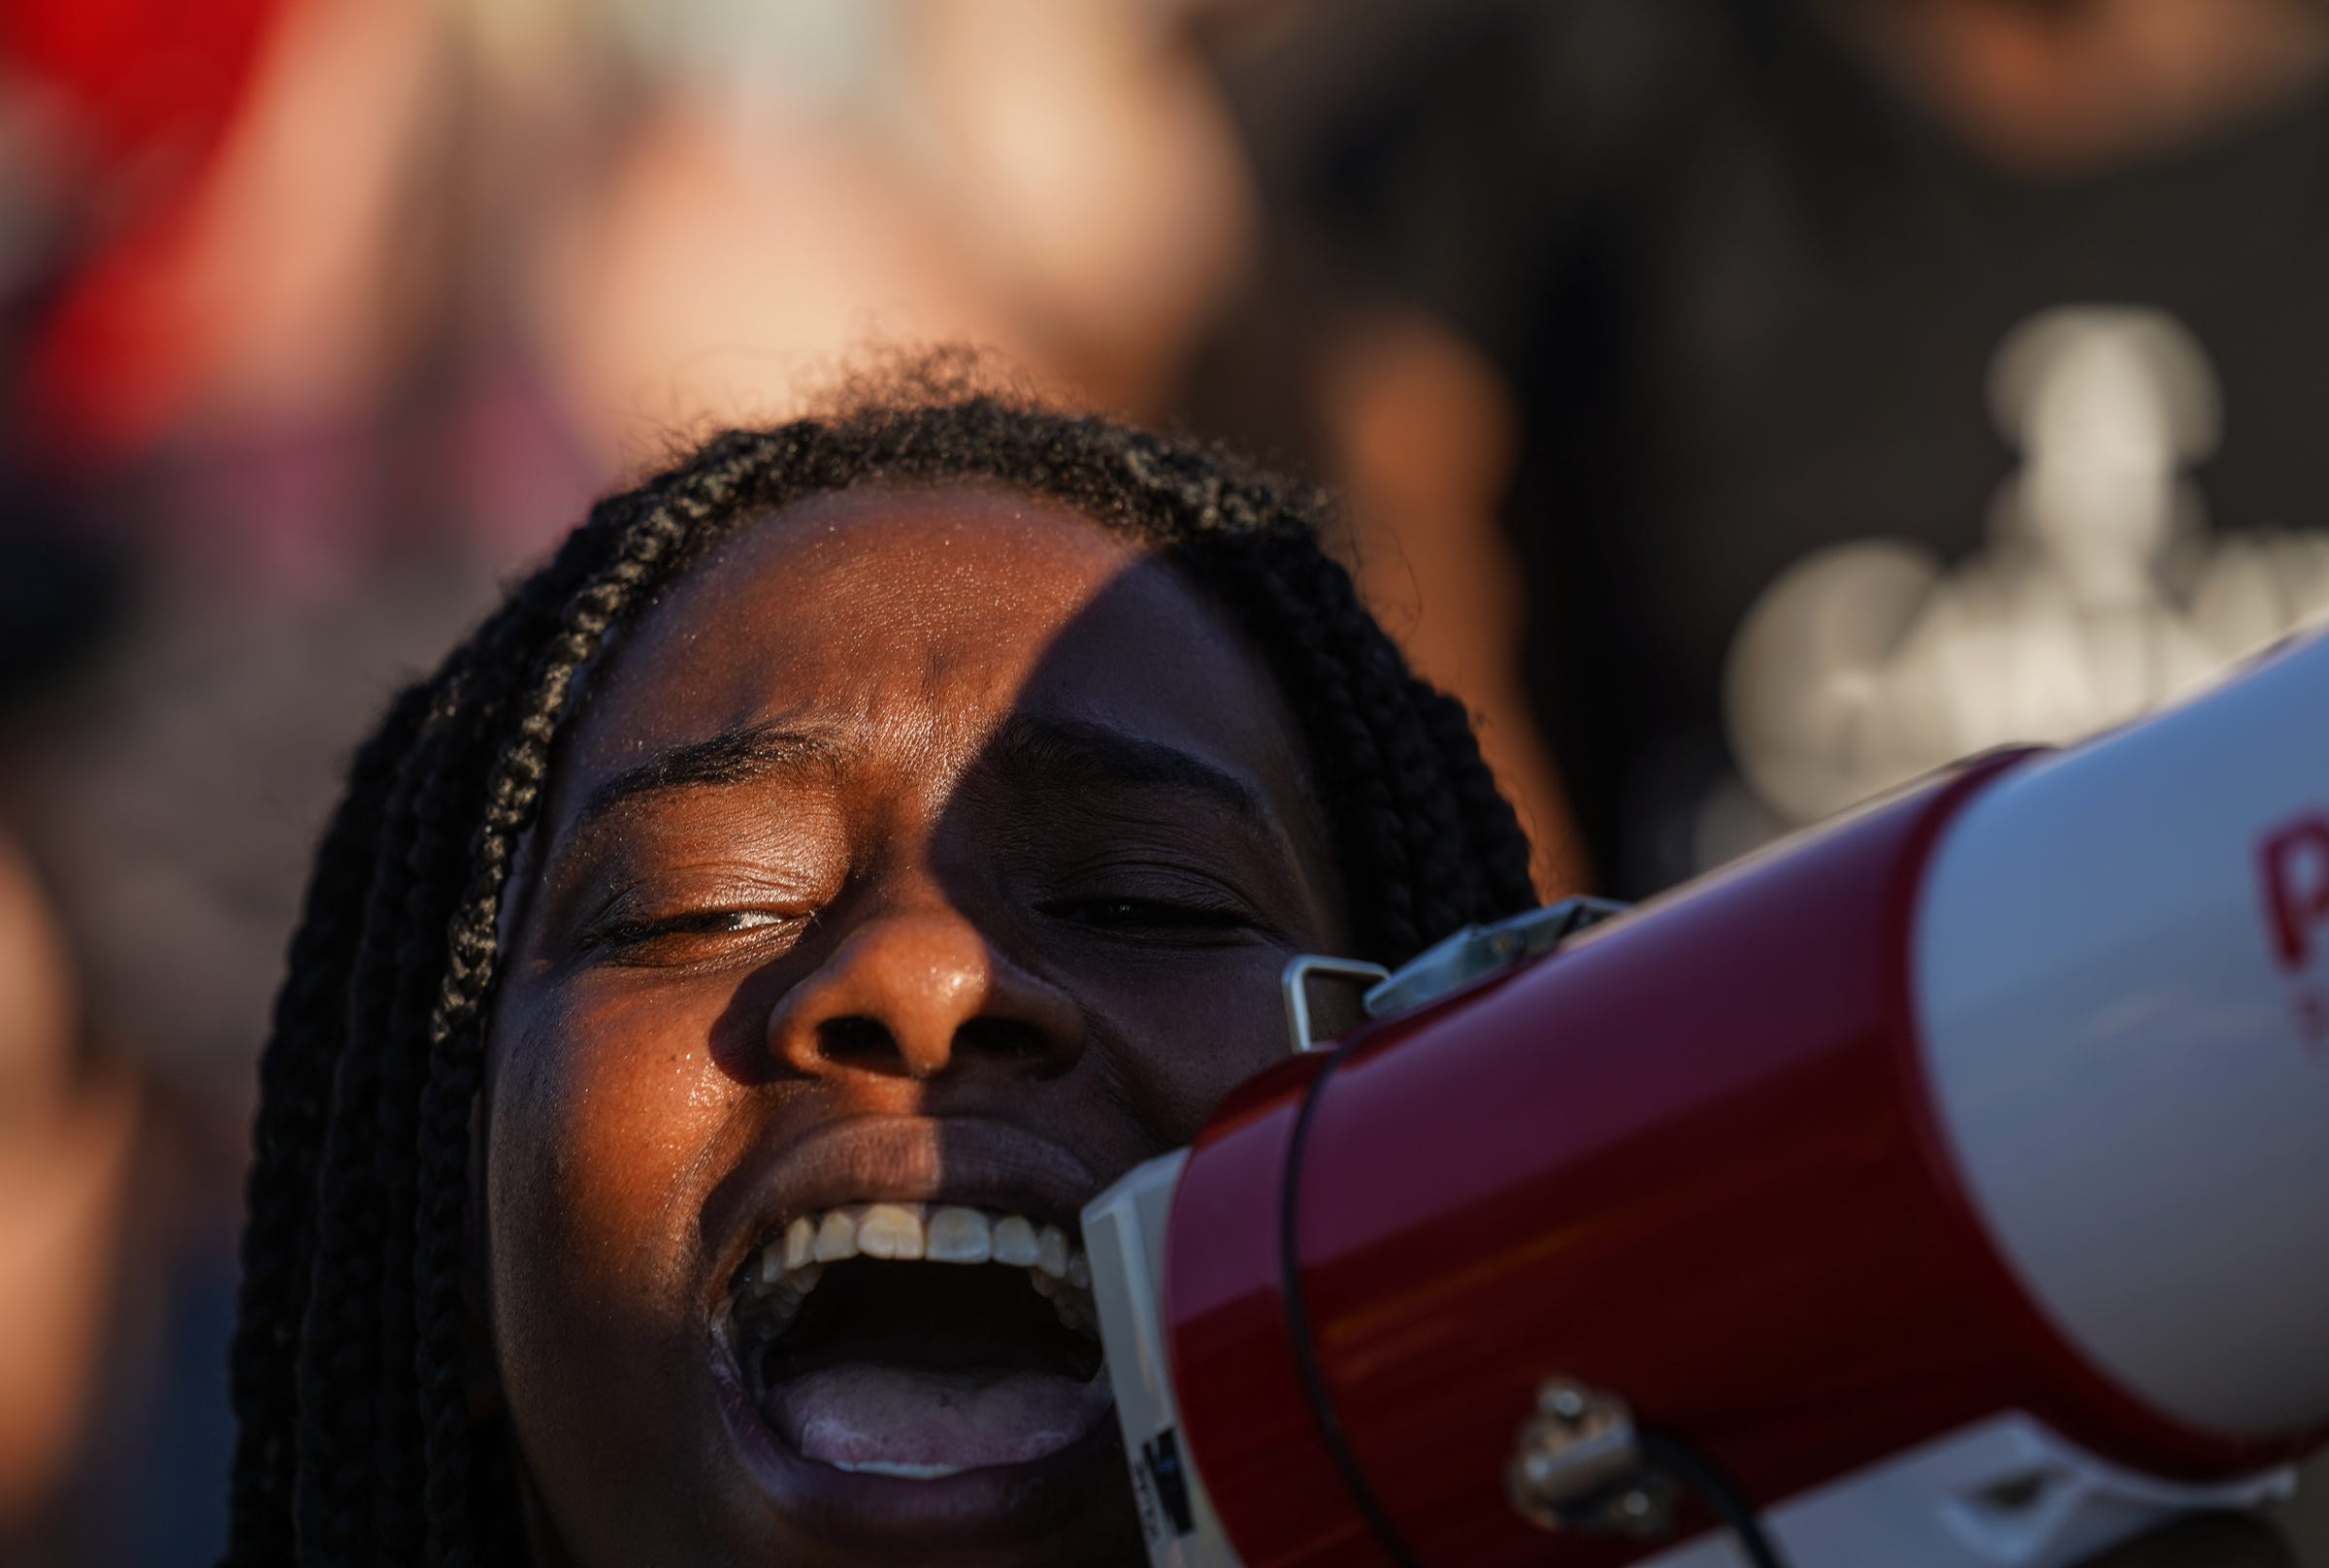 Shaqualla Johnson of Detroit shouts a chant while marching with other protesters in Southwest Detroit neighborhood on Monday, June 29, 2020.